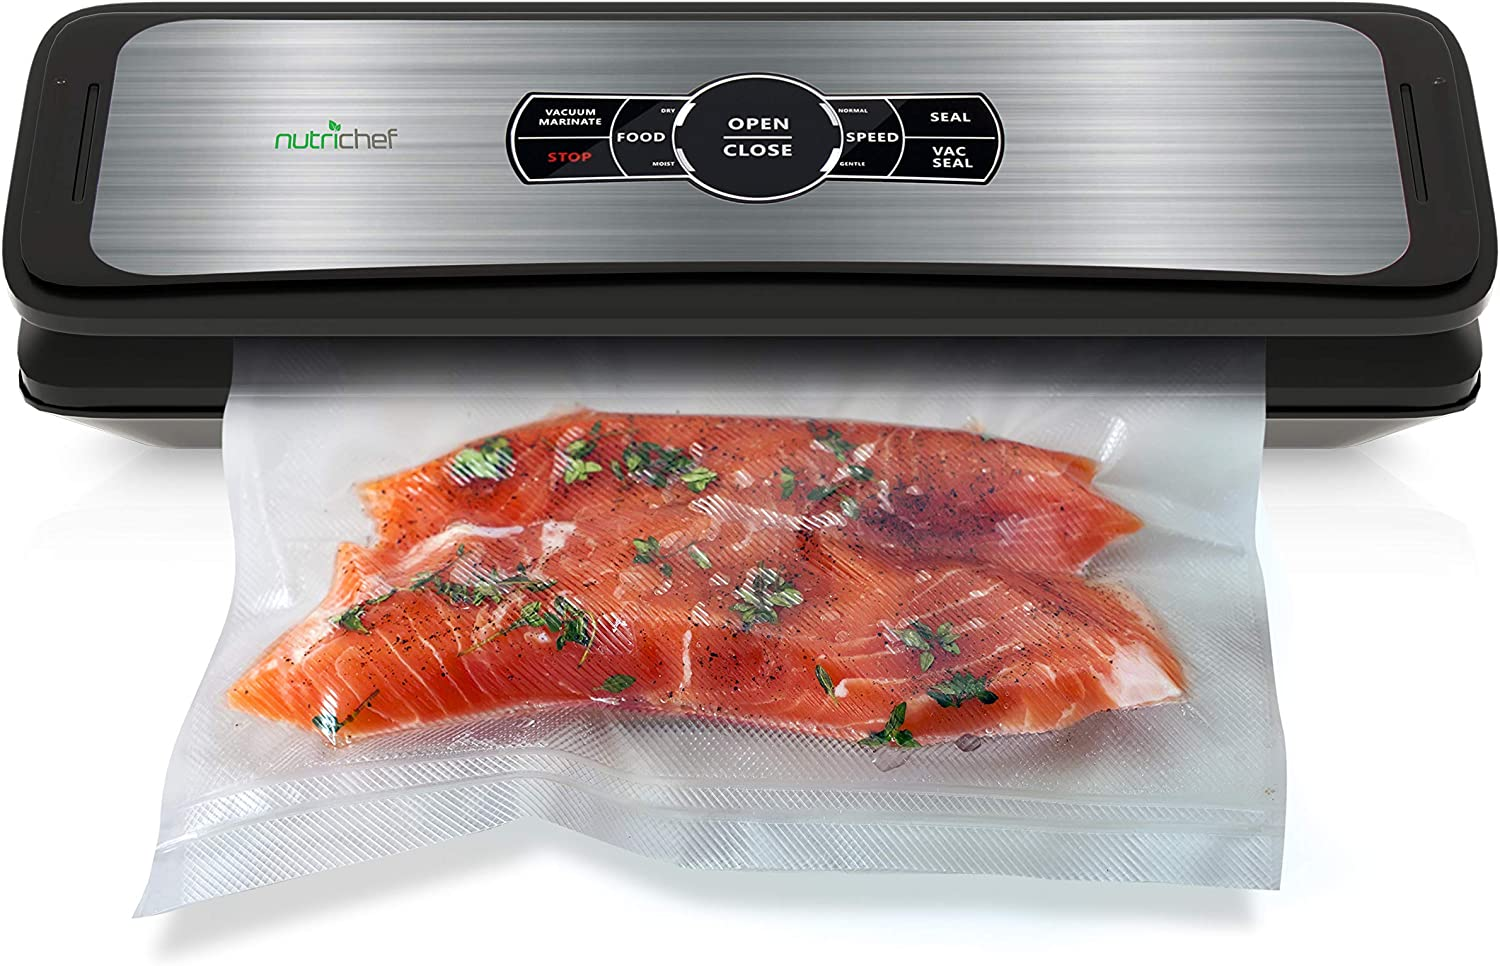 Nutrichef PKVS45STS Upgraded Sealer Automatic Vacuum Air Sealing System For Food Preservation w/Starter Kit | Compact Design, Lab Tested | Dry & Moist Mode, Built-in Bag Cutter, 2020 Model